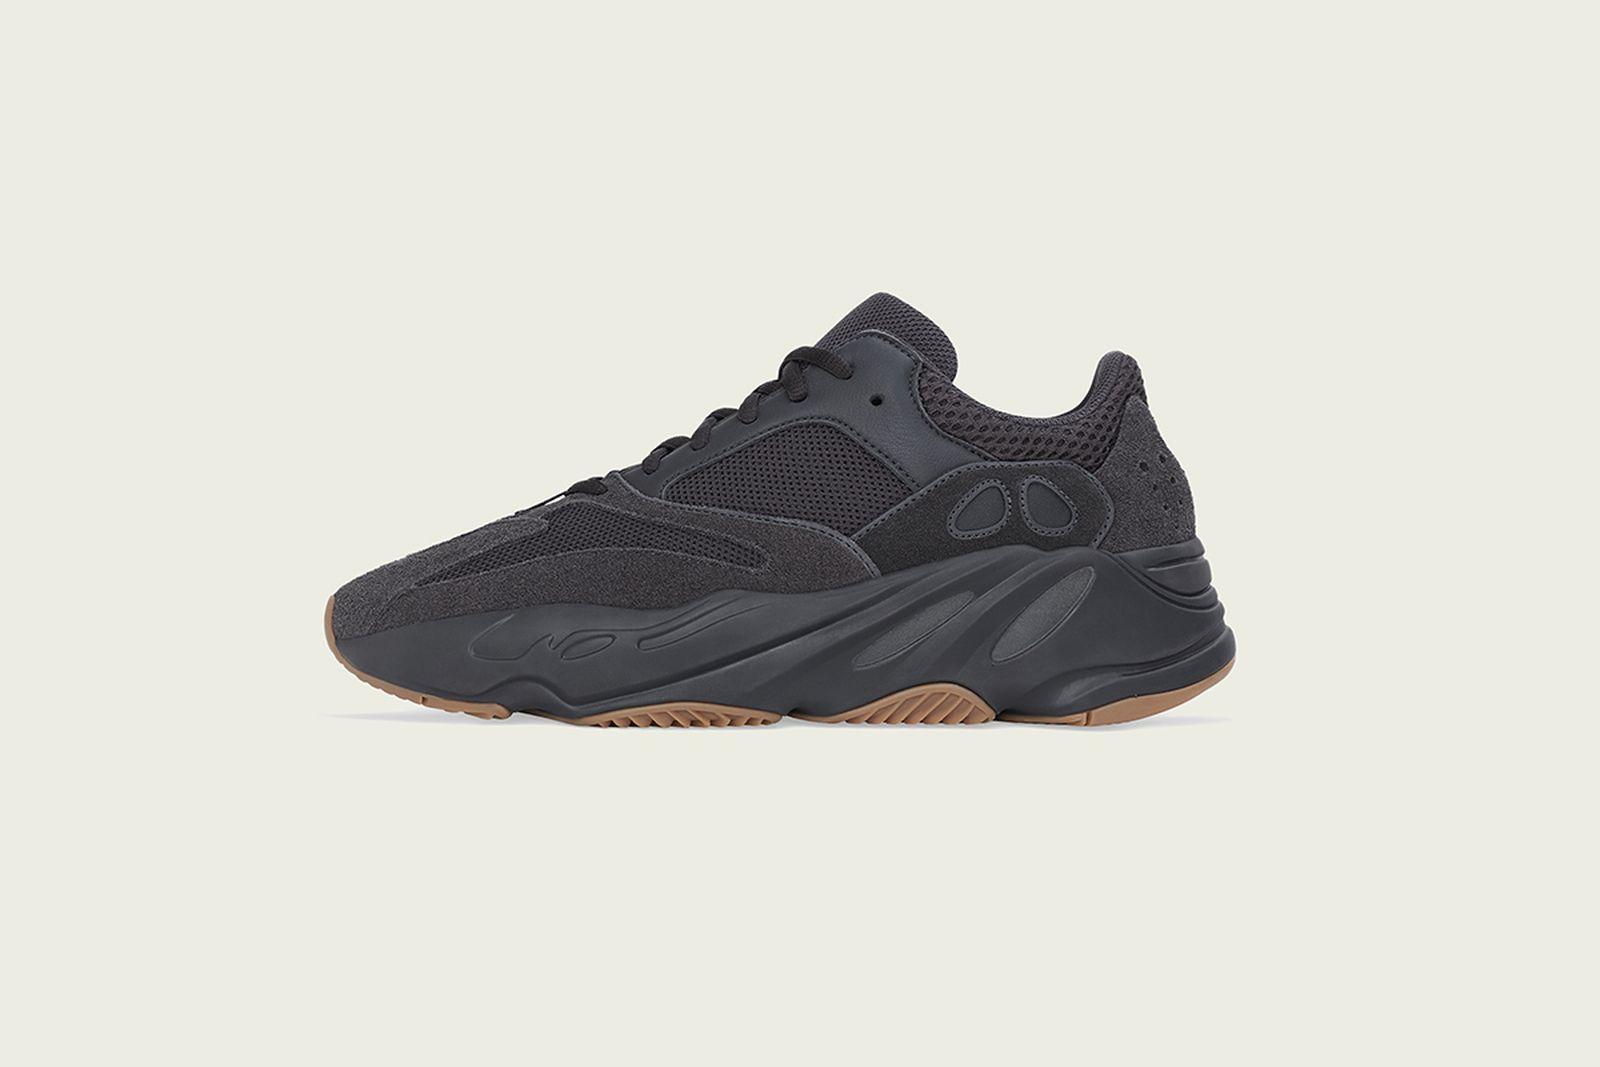 adidas yeezy boost 700 utility black release date price kanye west